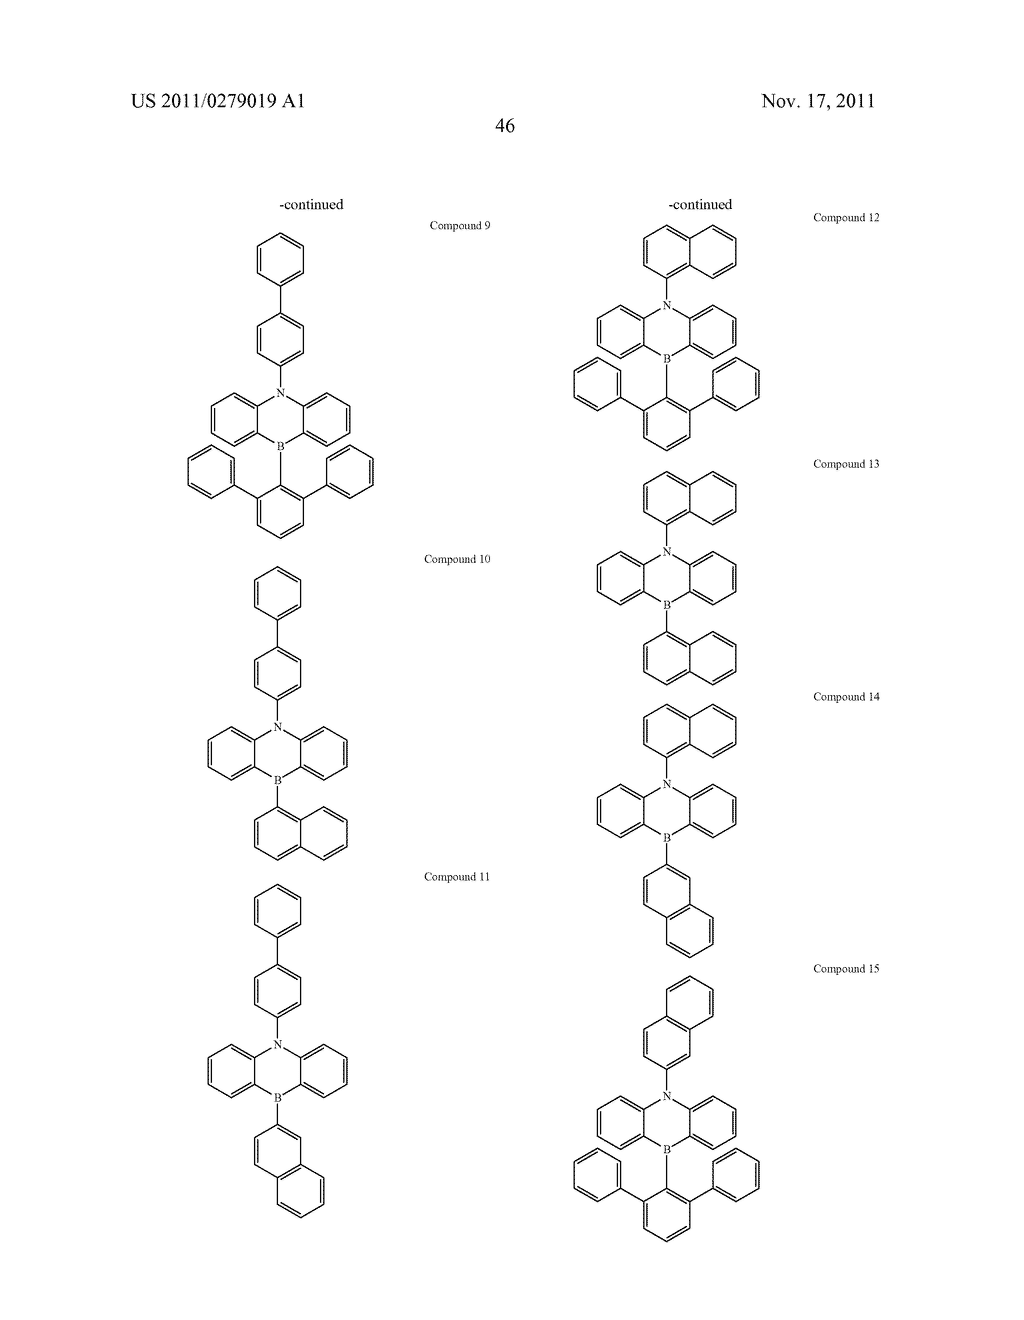 AZABORININE COMPOUNDS AS HOST MATERIALS AND DOPANTS FOR PHOLEDS - diagram, schematic, and image 53